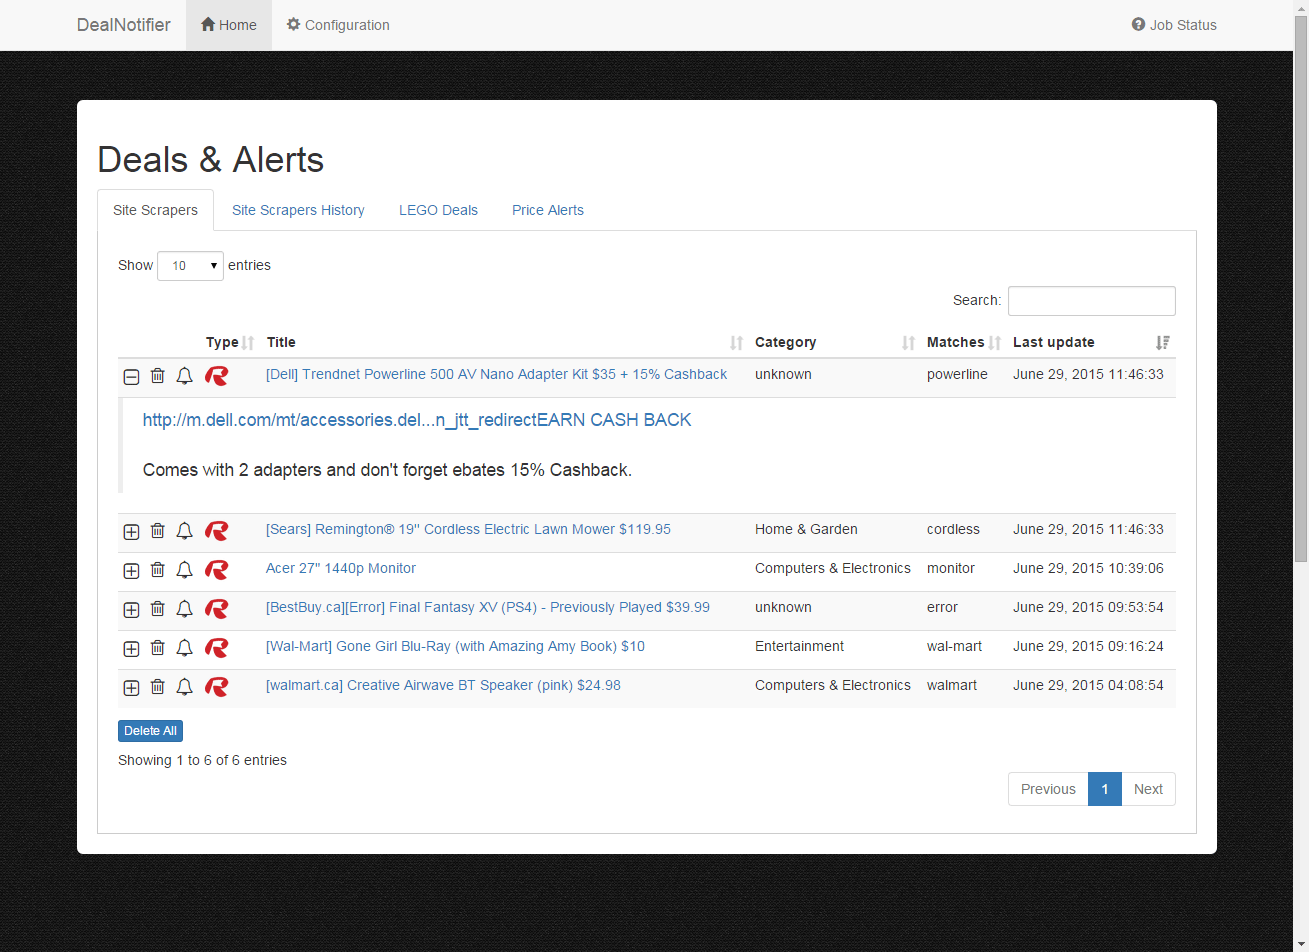 DealNotifier: Site Scrapers (Expanded First Post From Thread)